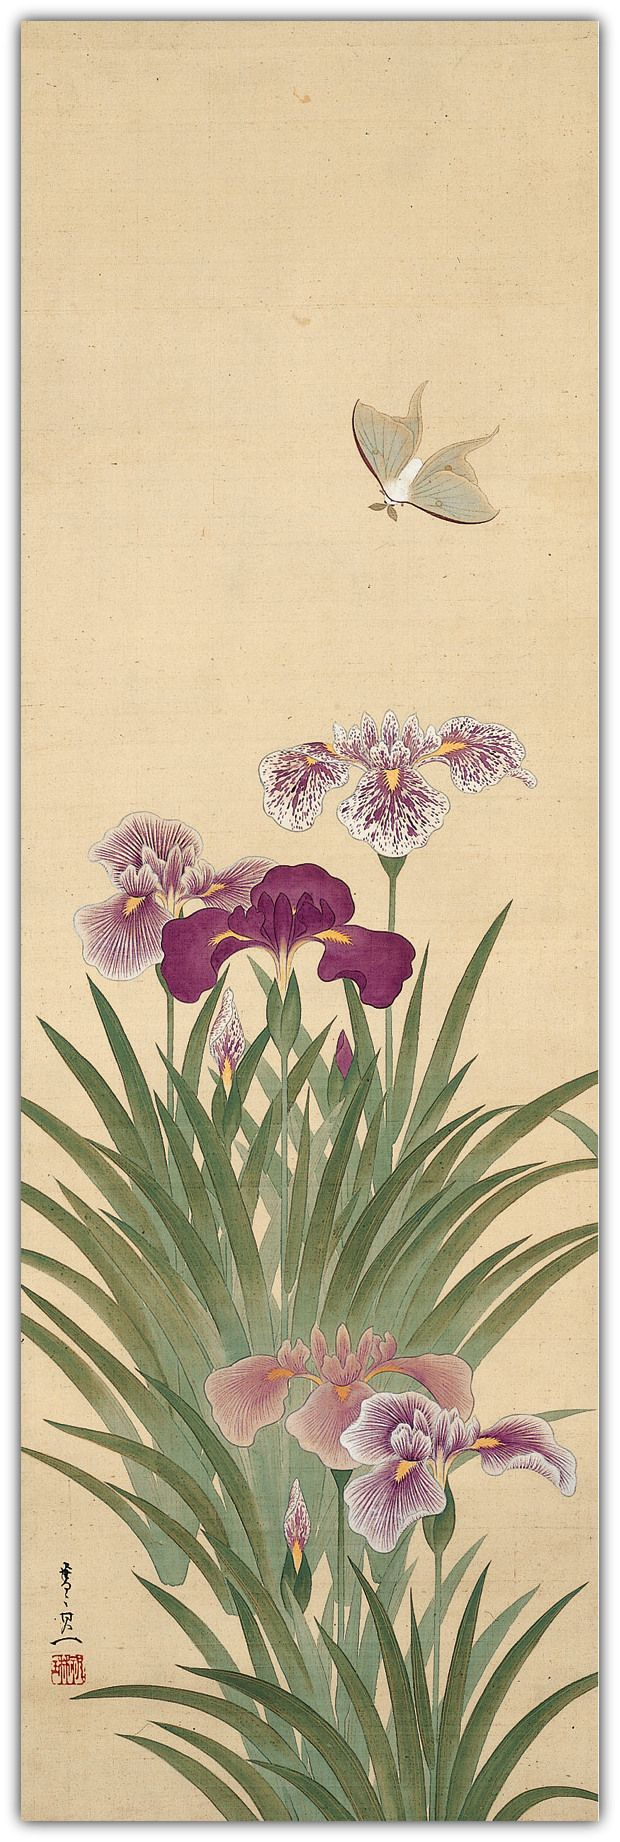 Irises and Moth. Suzuki Kiitsu (鈴木其一; 1796–1858). Edo period. Hanging scroll; ink, color, and gold on silk. 101.6 x 33 cm (40 x 13 in.) | Donated to The Metropolitan Museum of Art, New York by the Mary and Jackson Burke Foundation in 2015